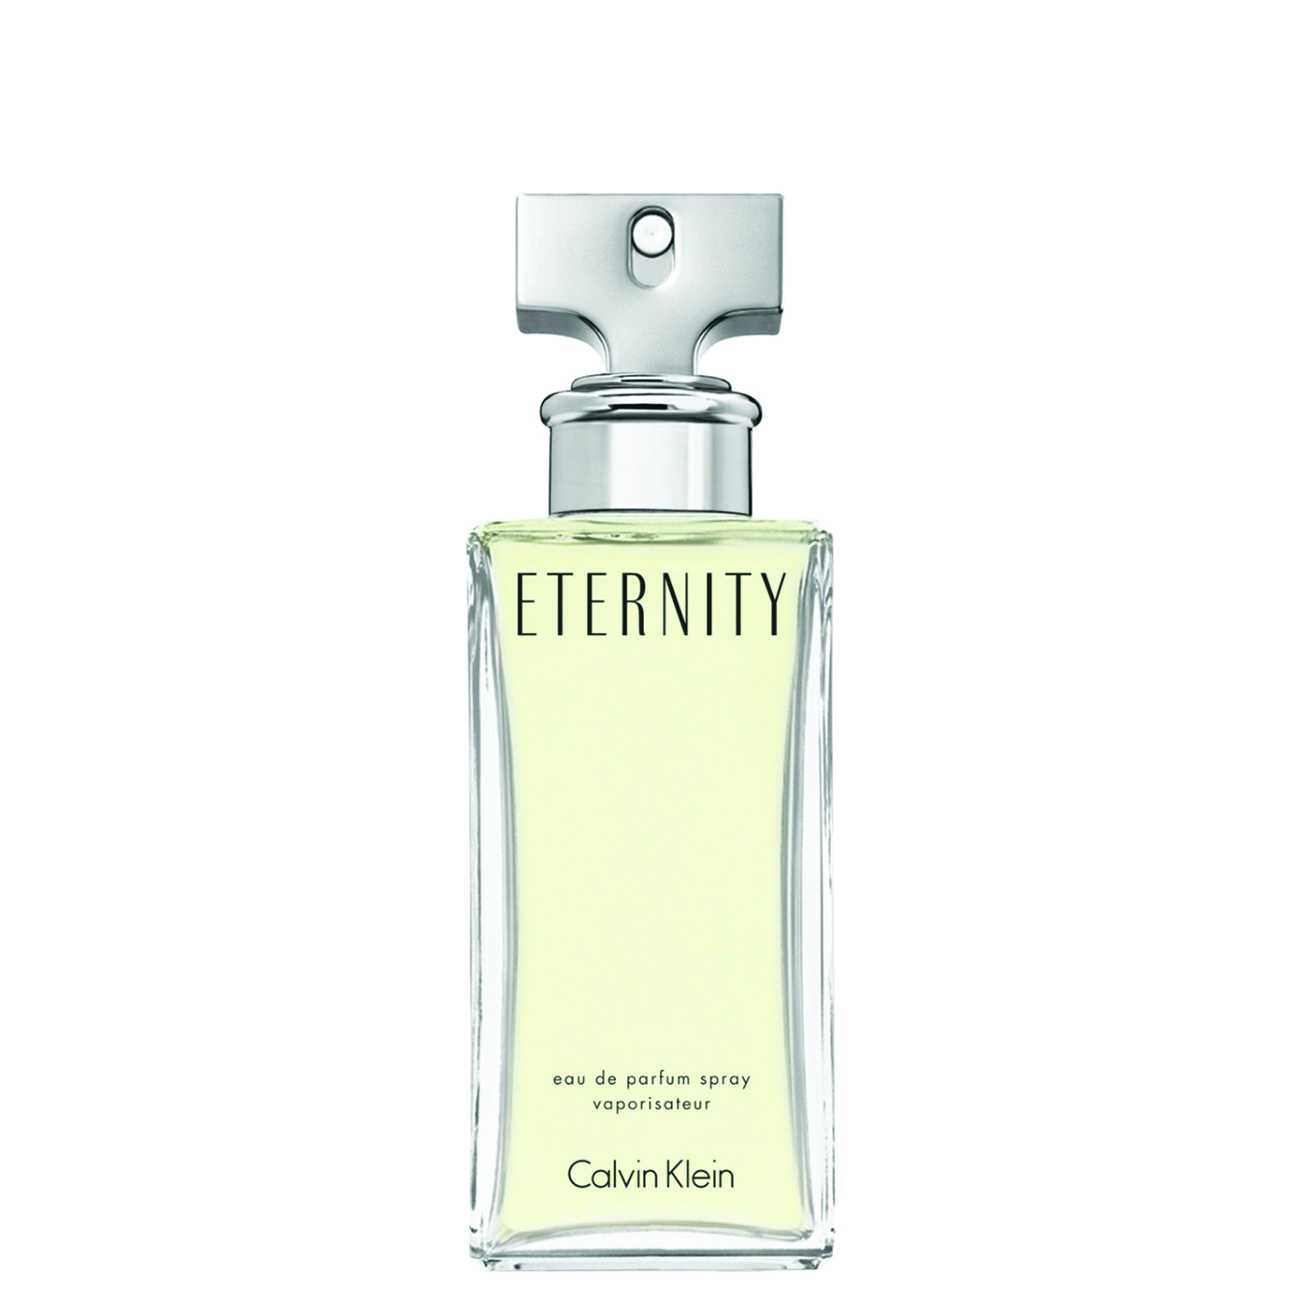 ETERNITY 50ml